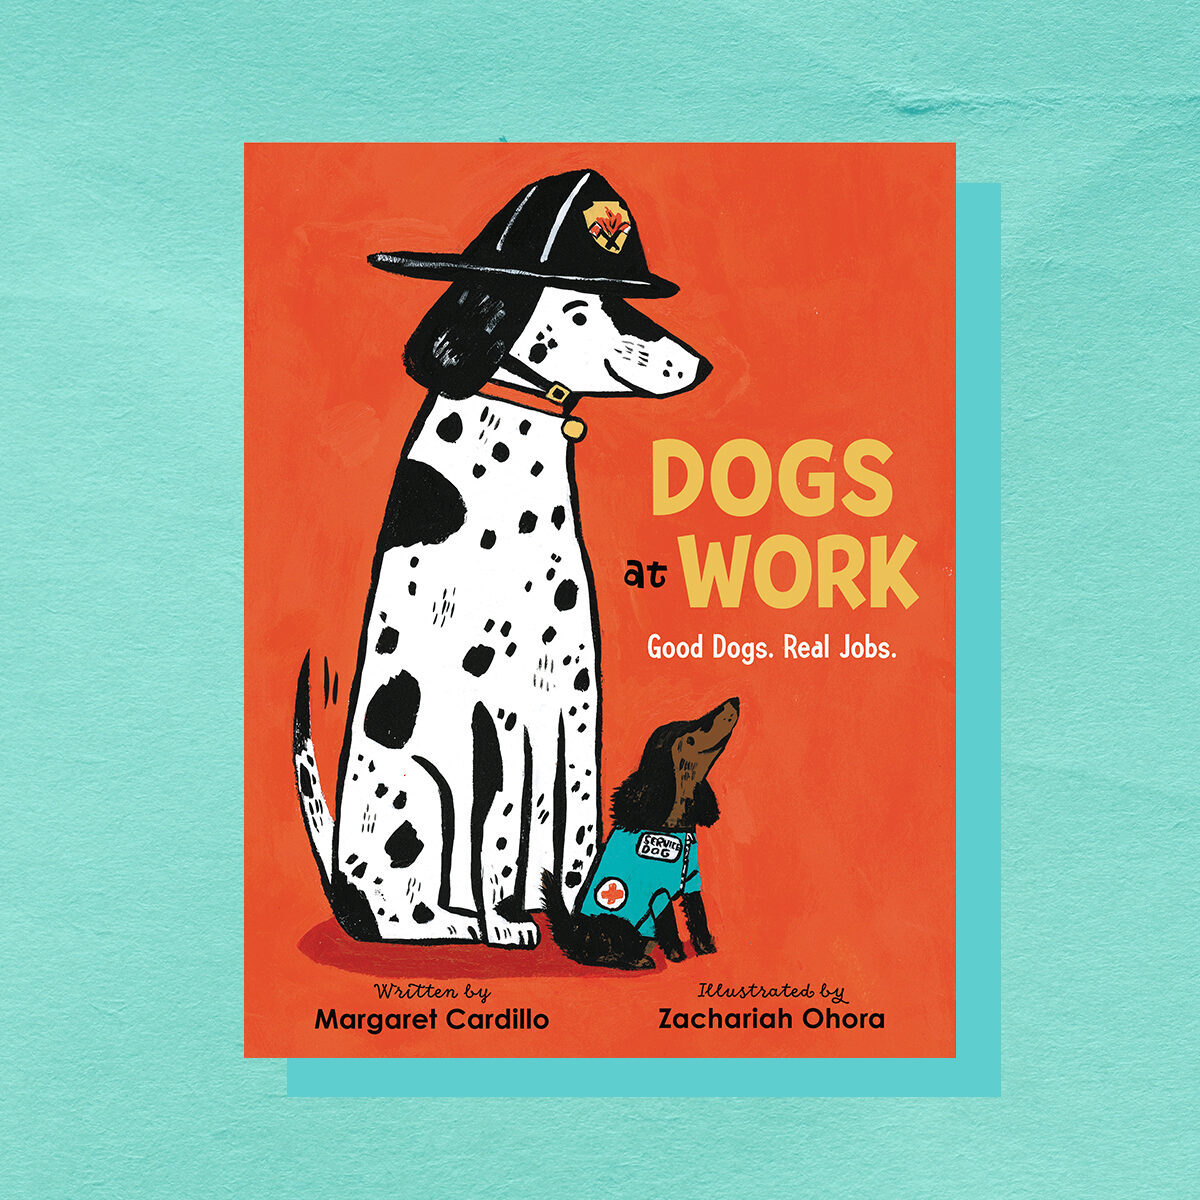 Book cover of Dogs at Work by Margaret Cardillo